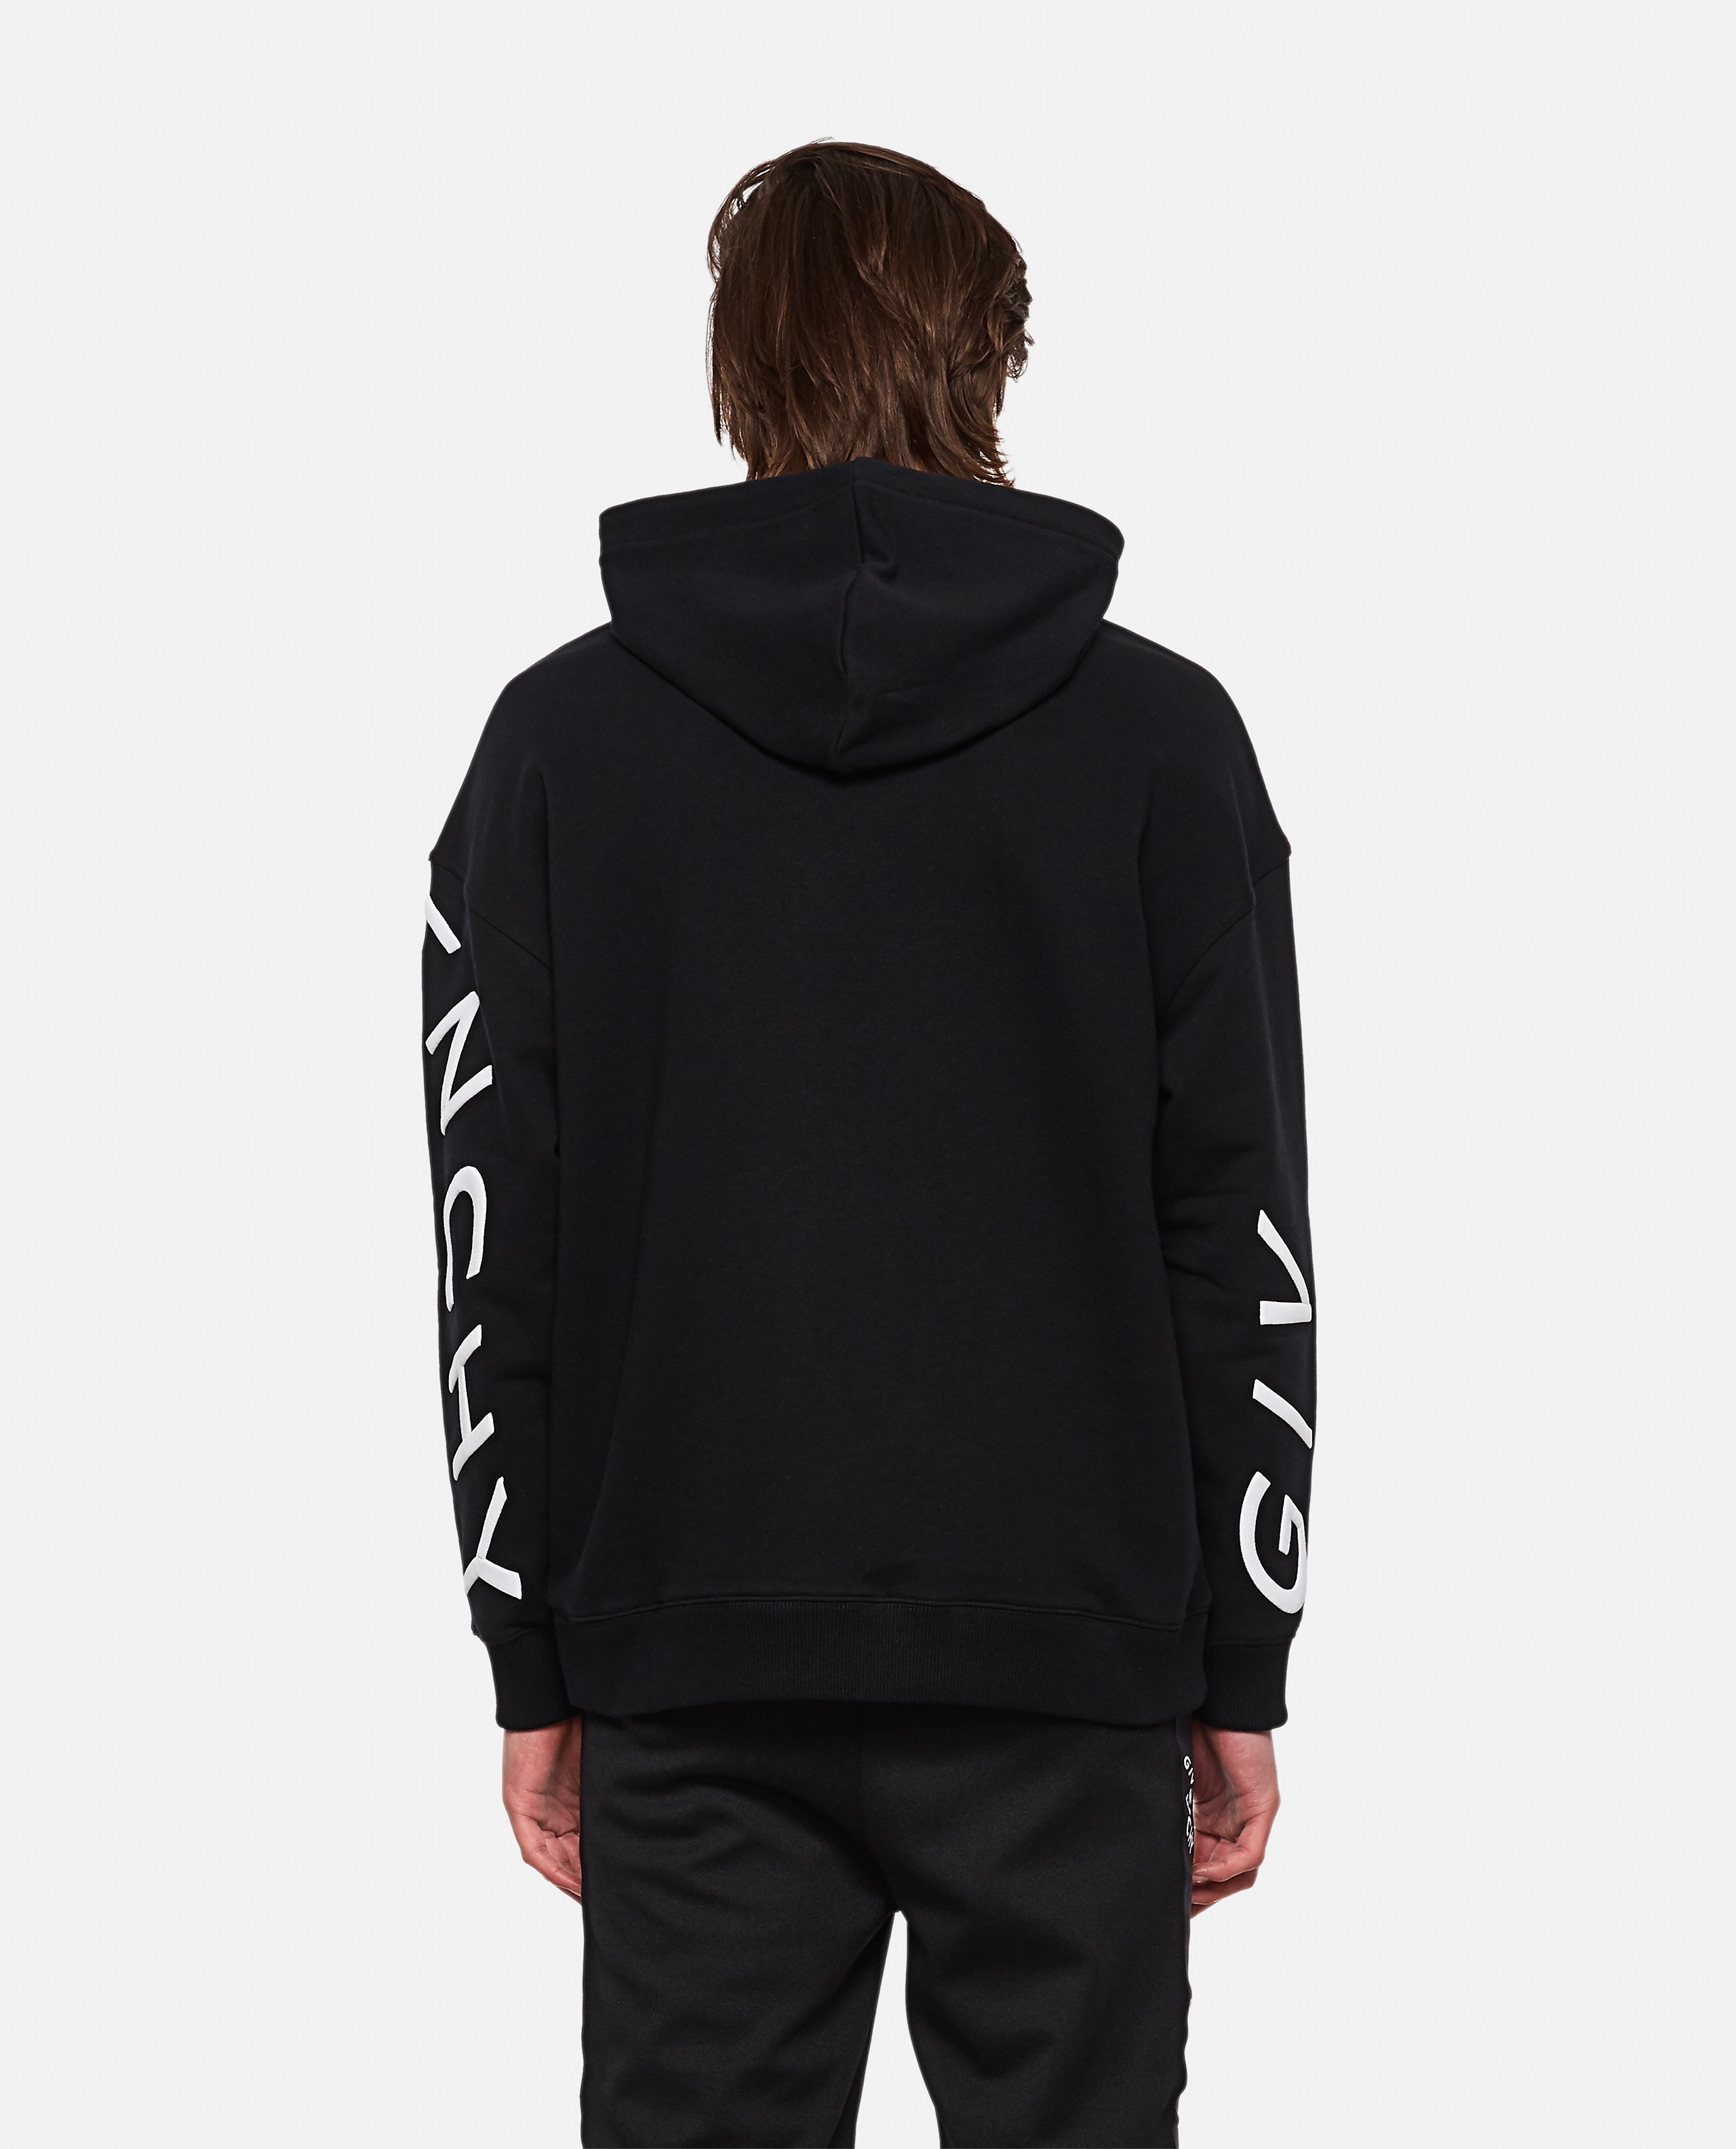 Refracted sweatshirt with embroidery Men Givenchy 000253110037400 3